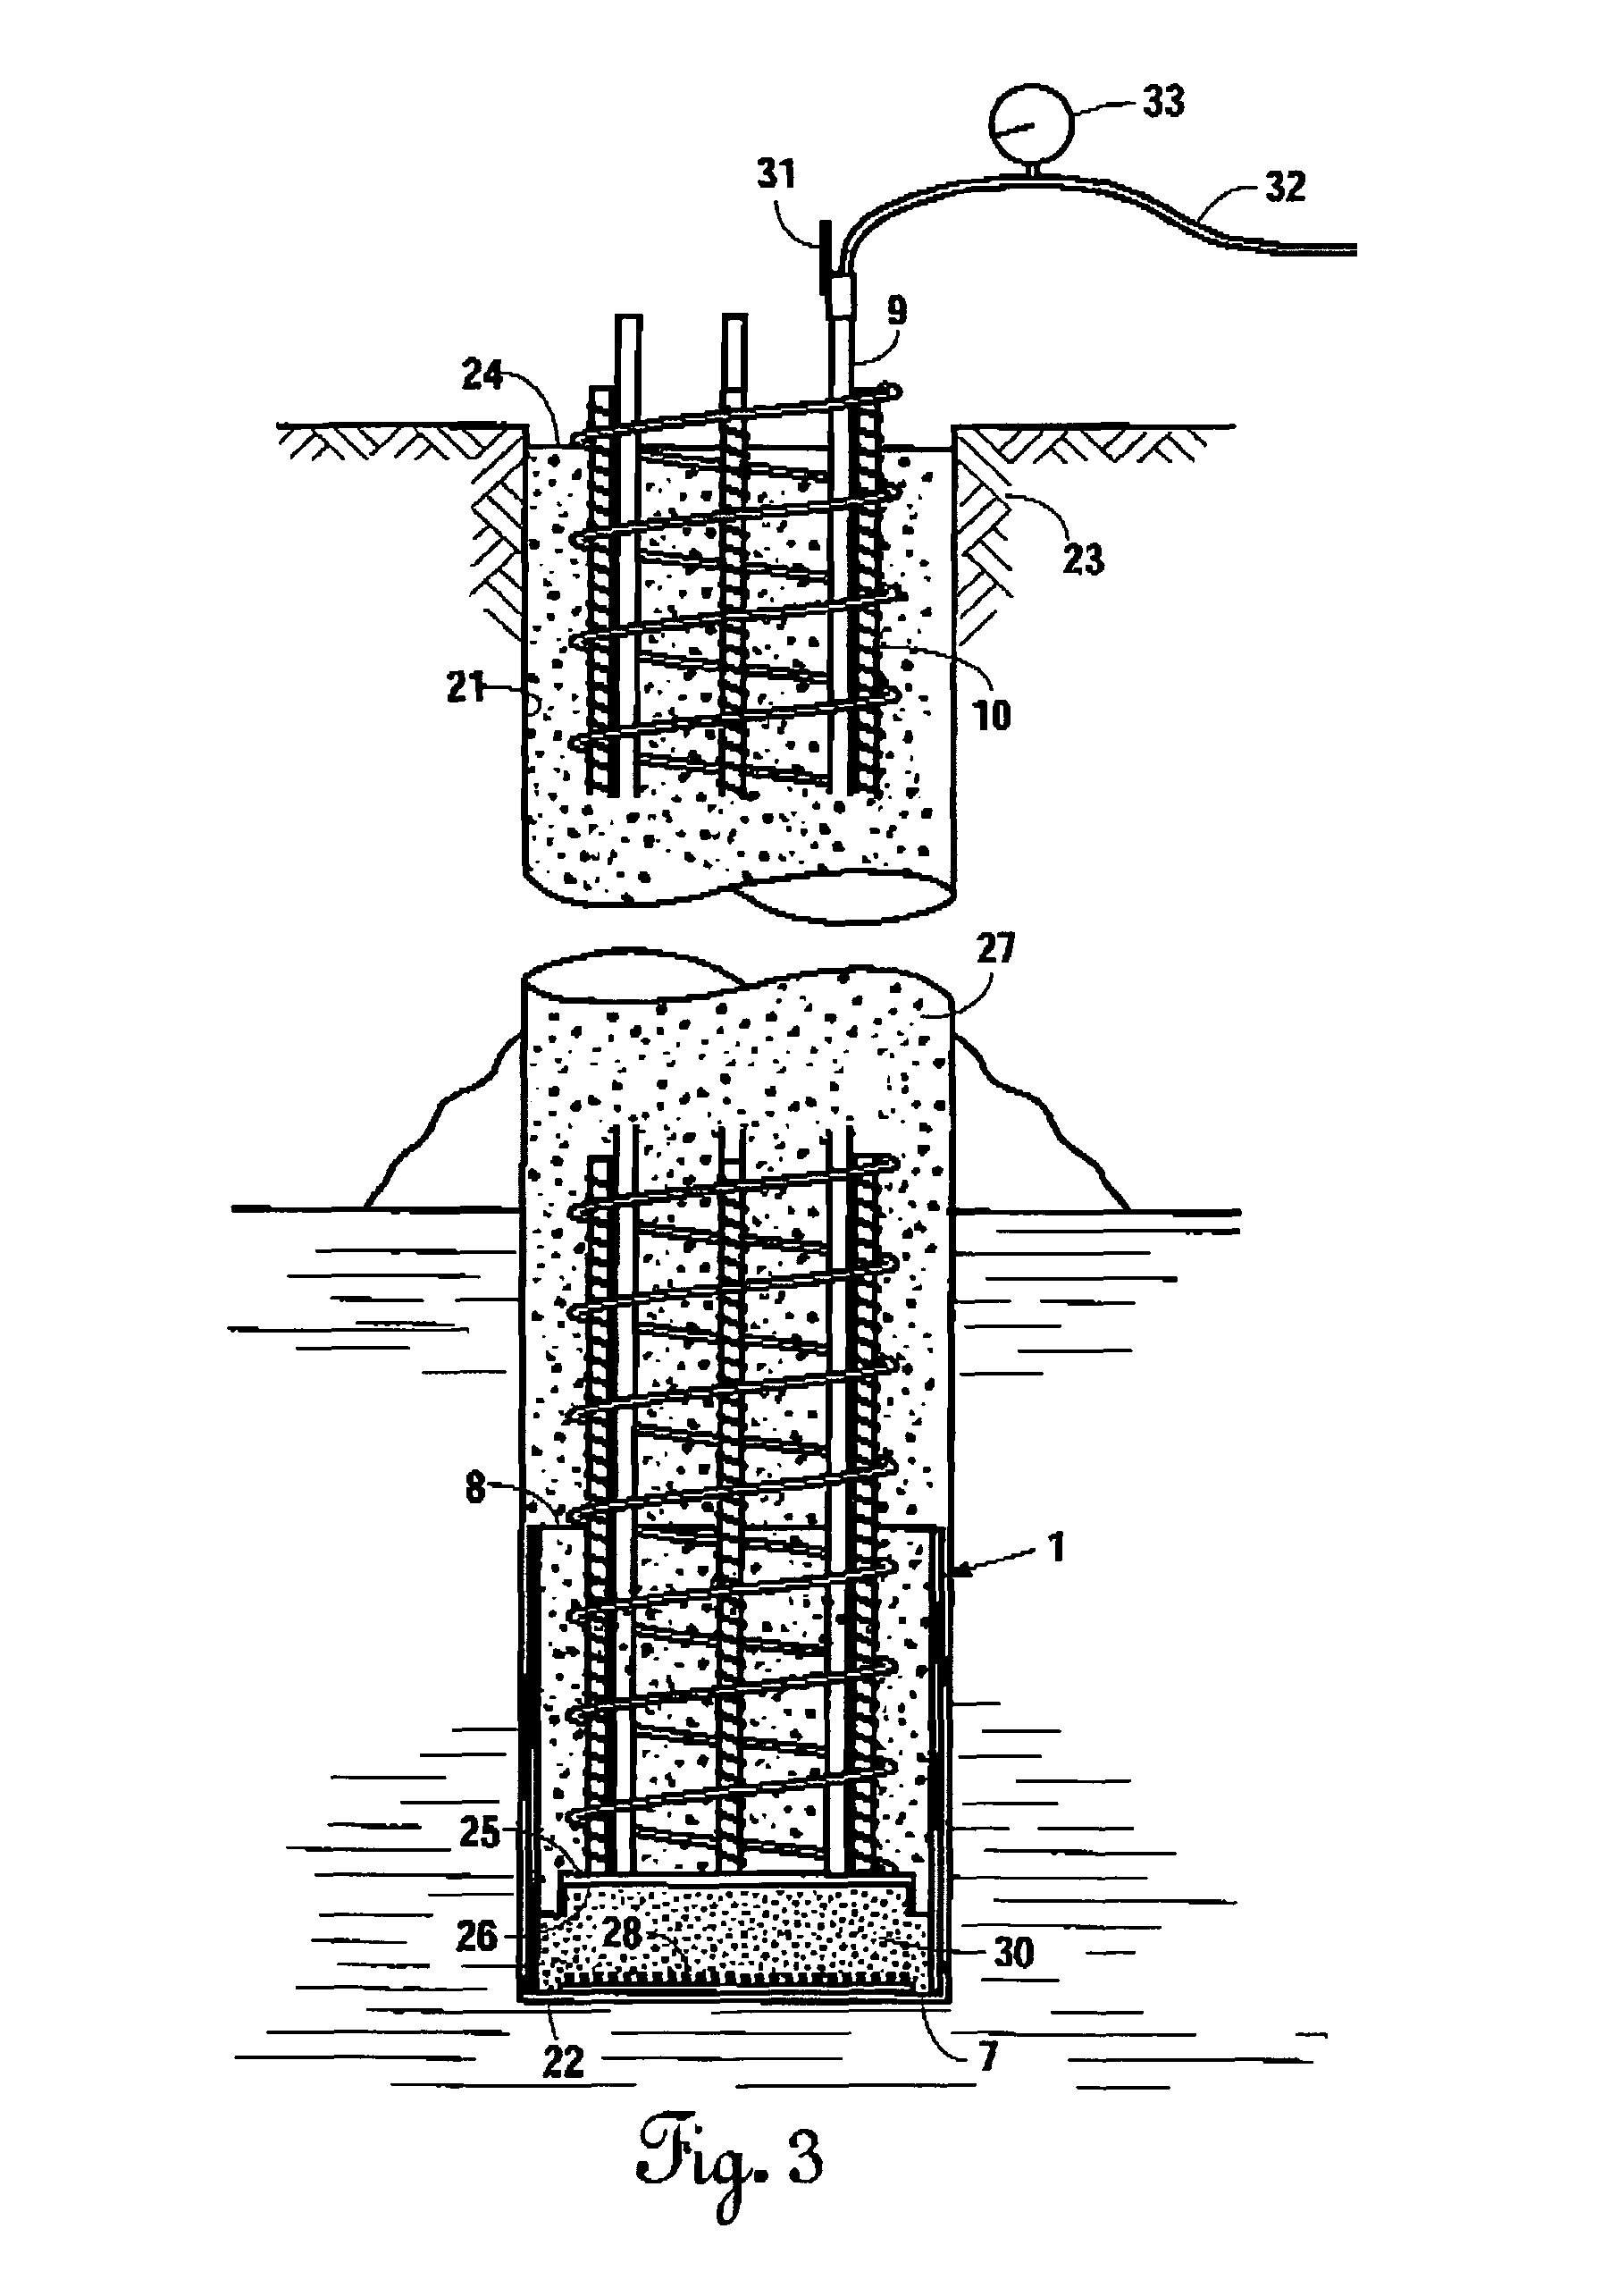 Pile Foundation Drawing : Patent us apparatus and method for improved grout